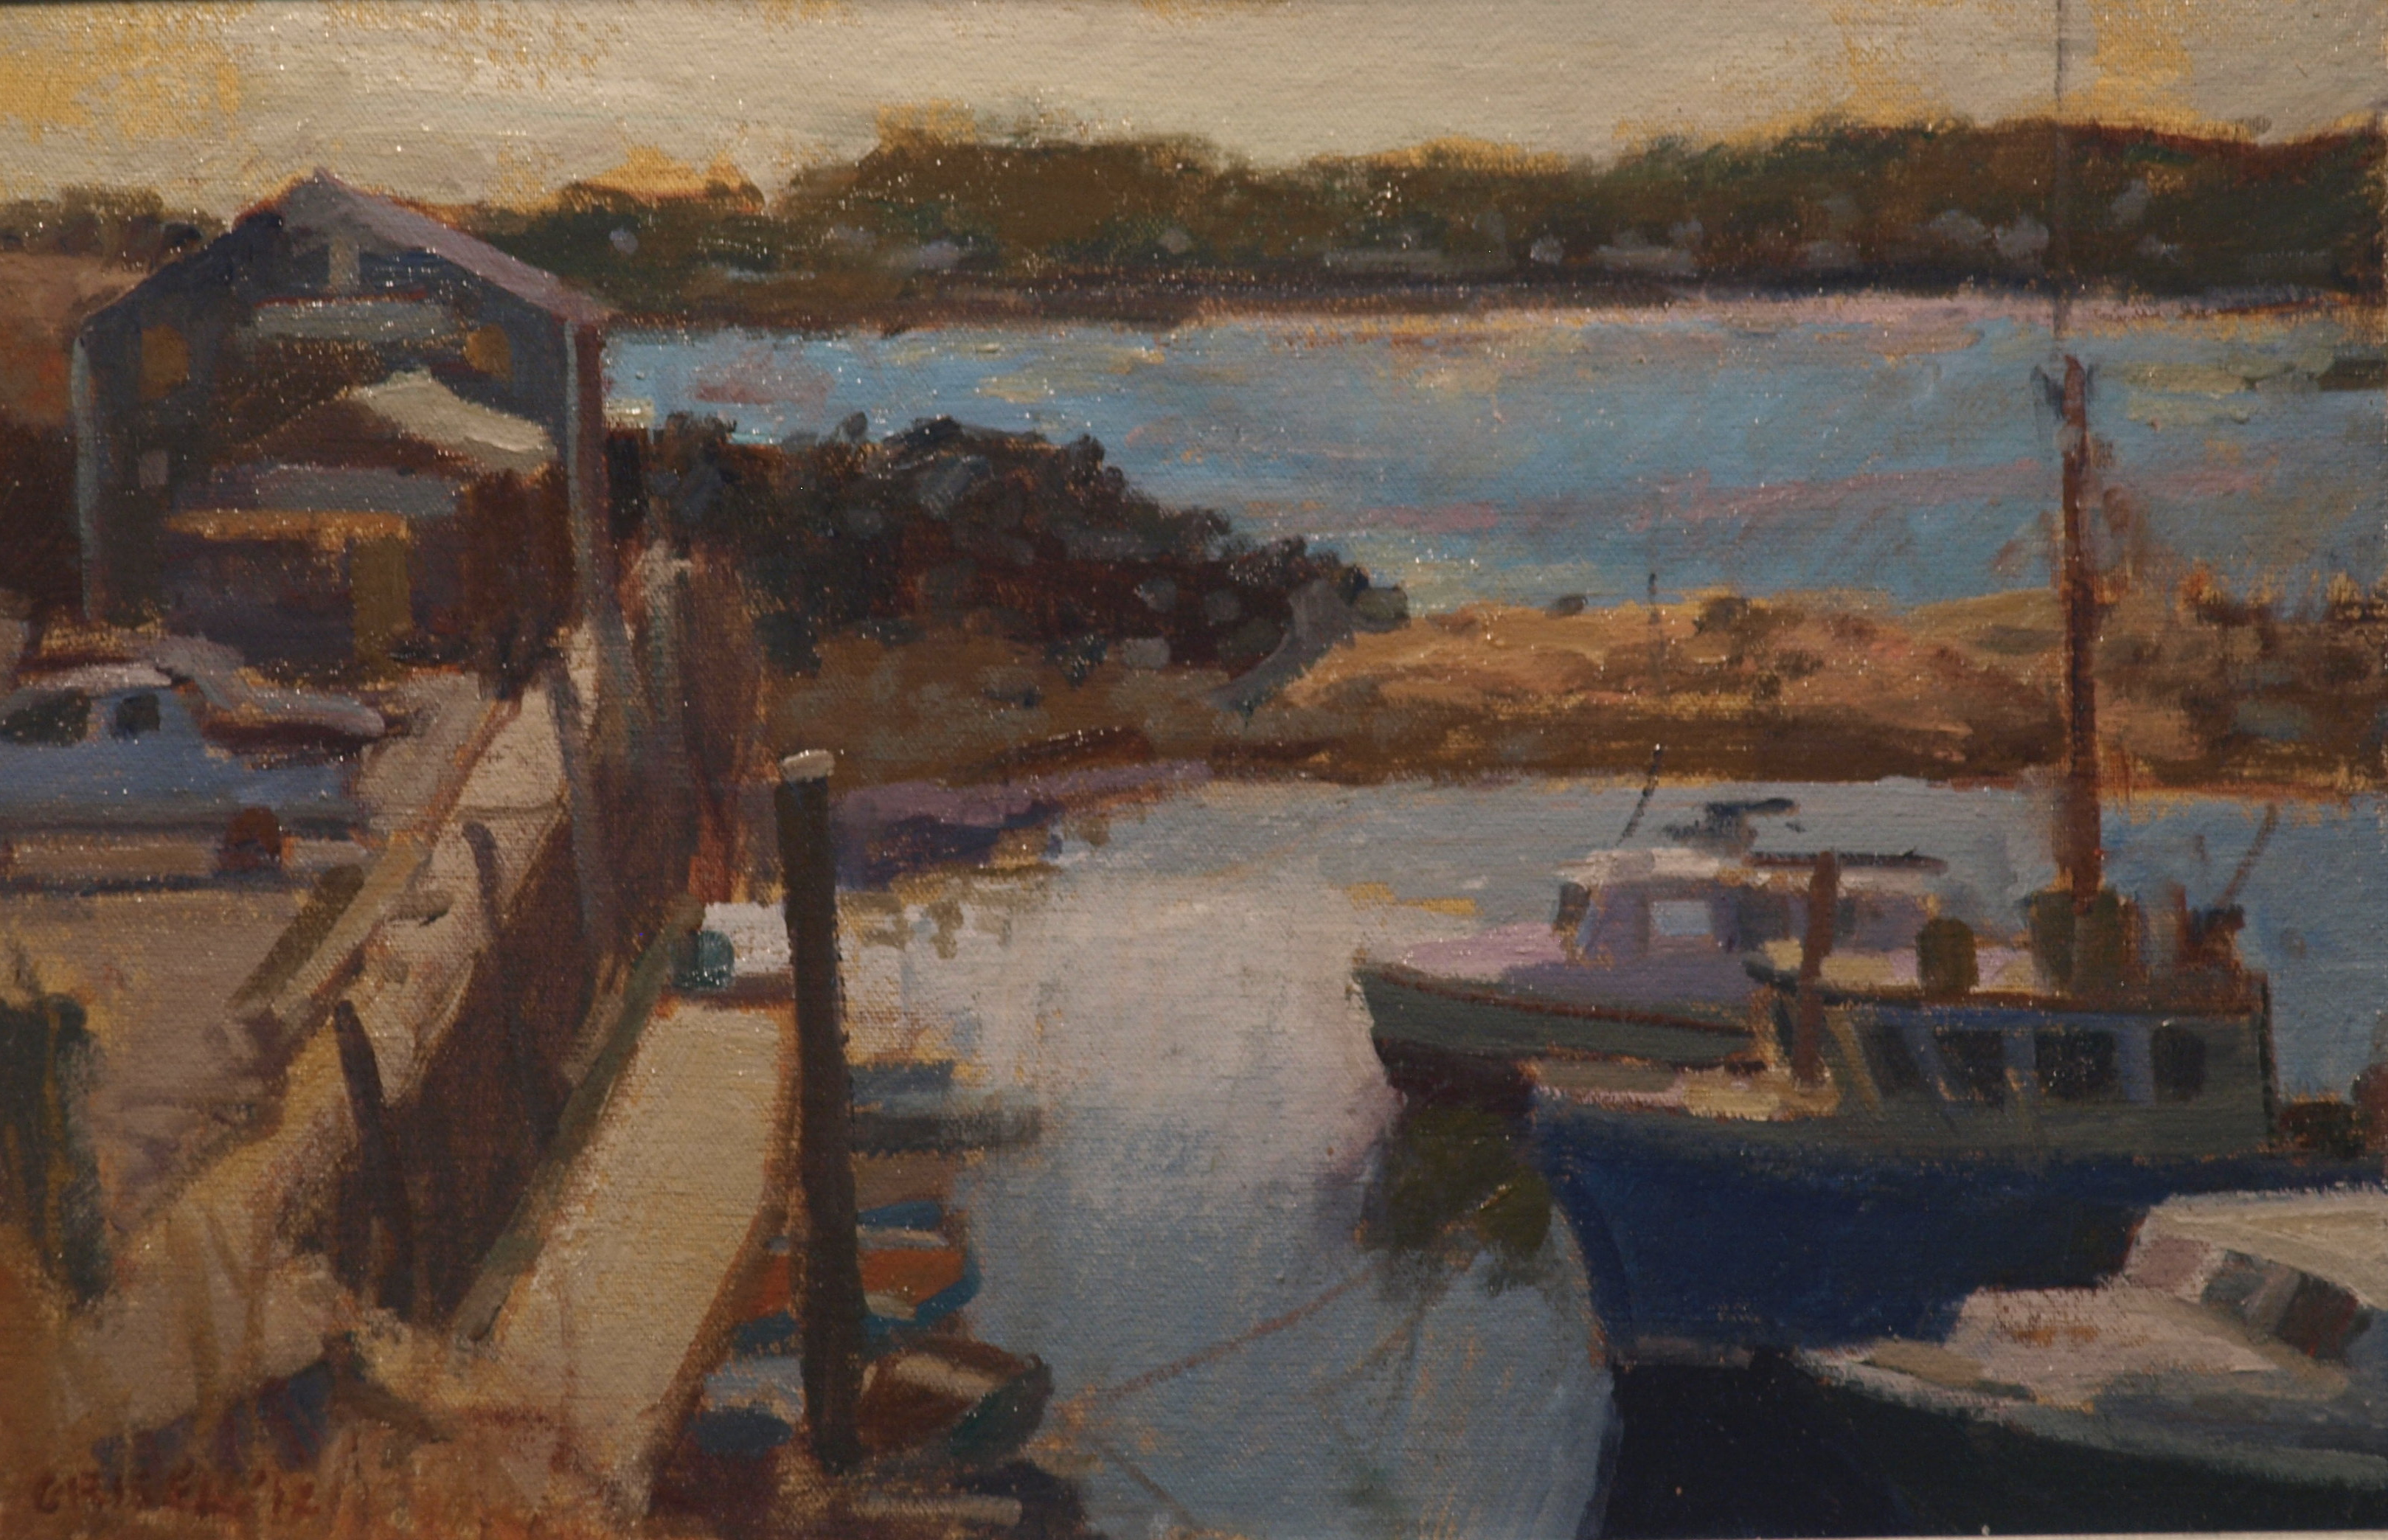 Boats - Rockport, Oil on Canvas on Panel, 12 x 18 Inches, by Susan Grisell, $275